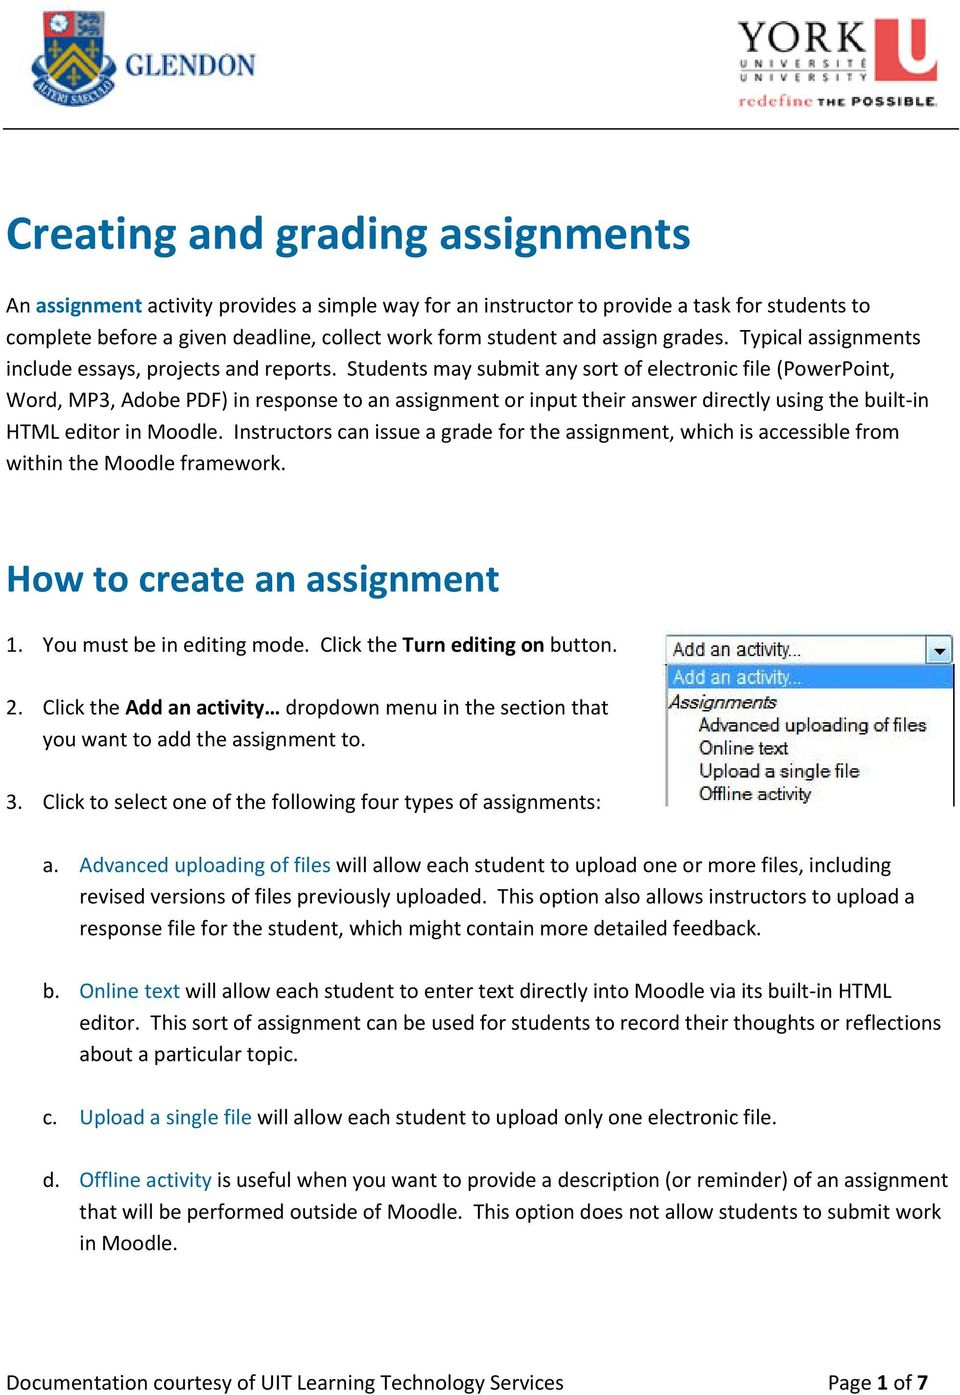 Creating and grading assignments - PDF